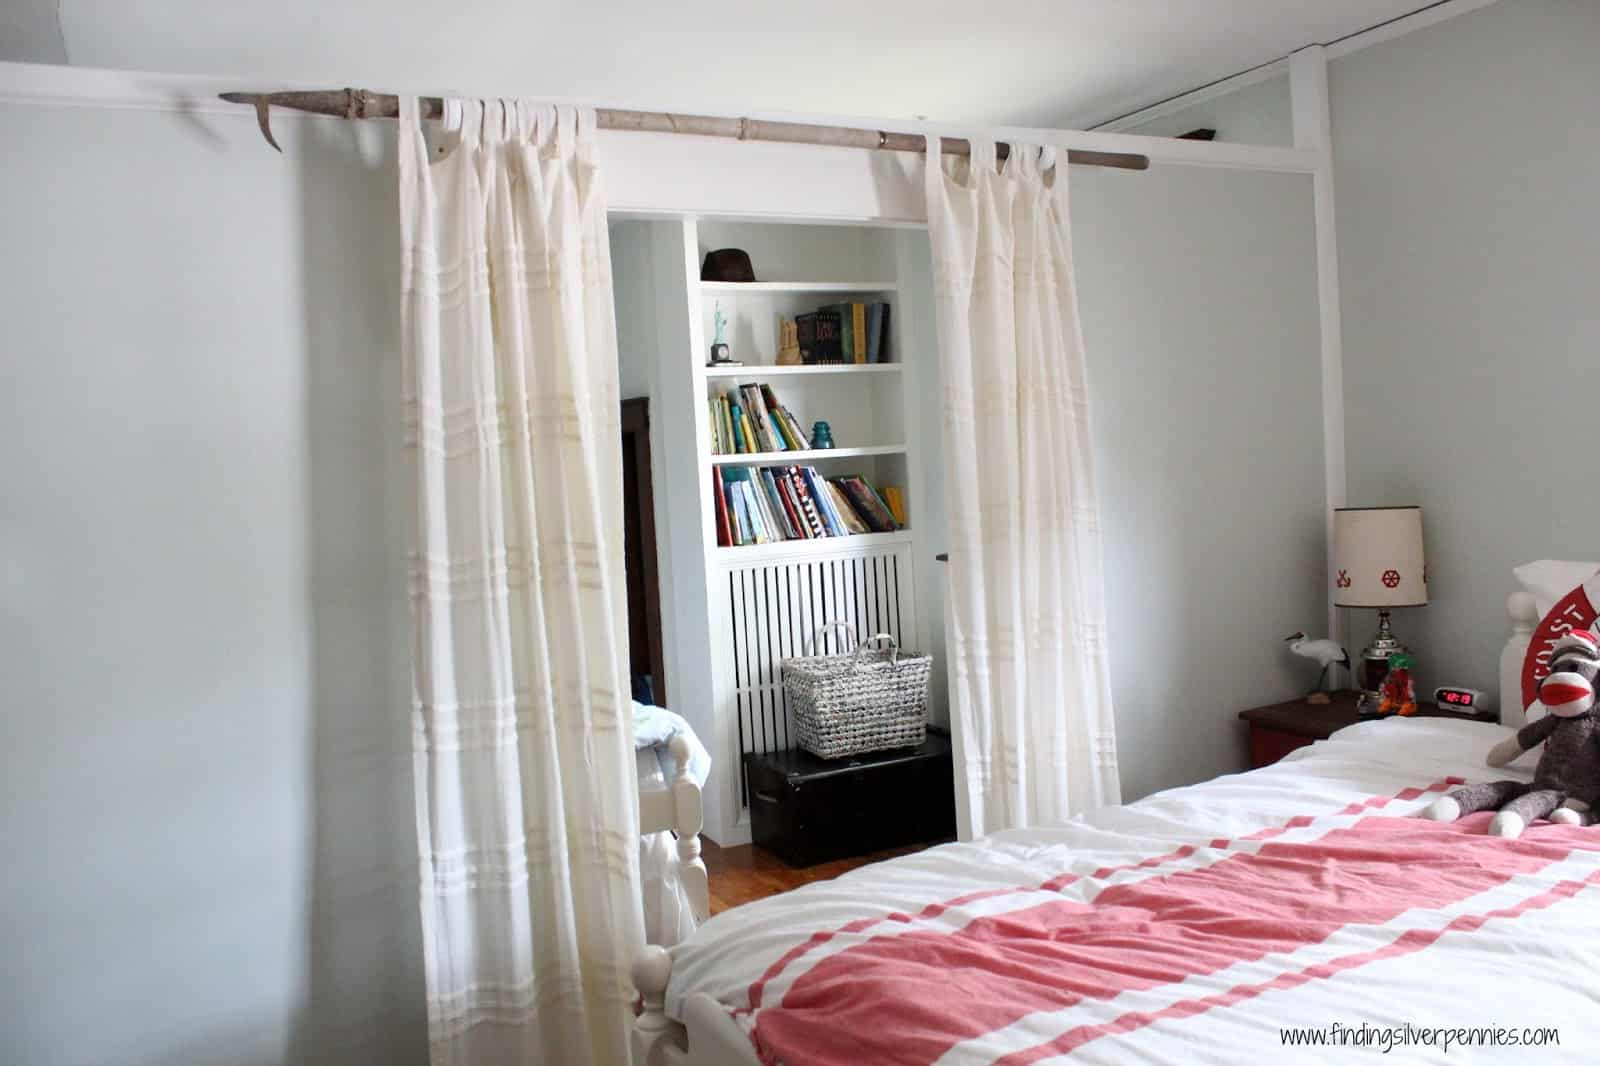 Diy nautical curtain rod